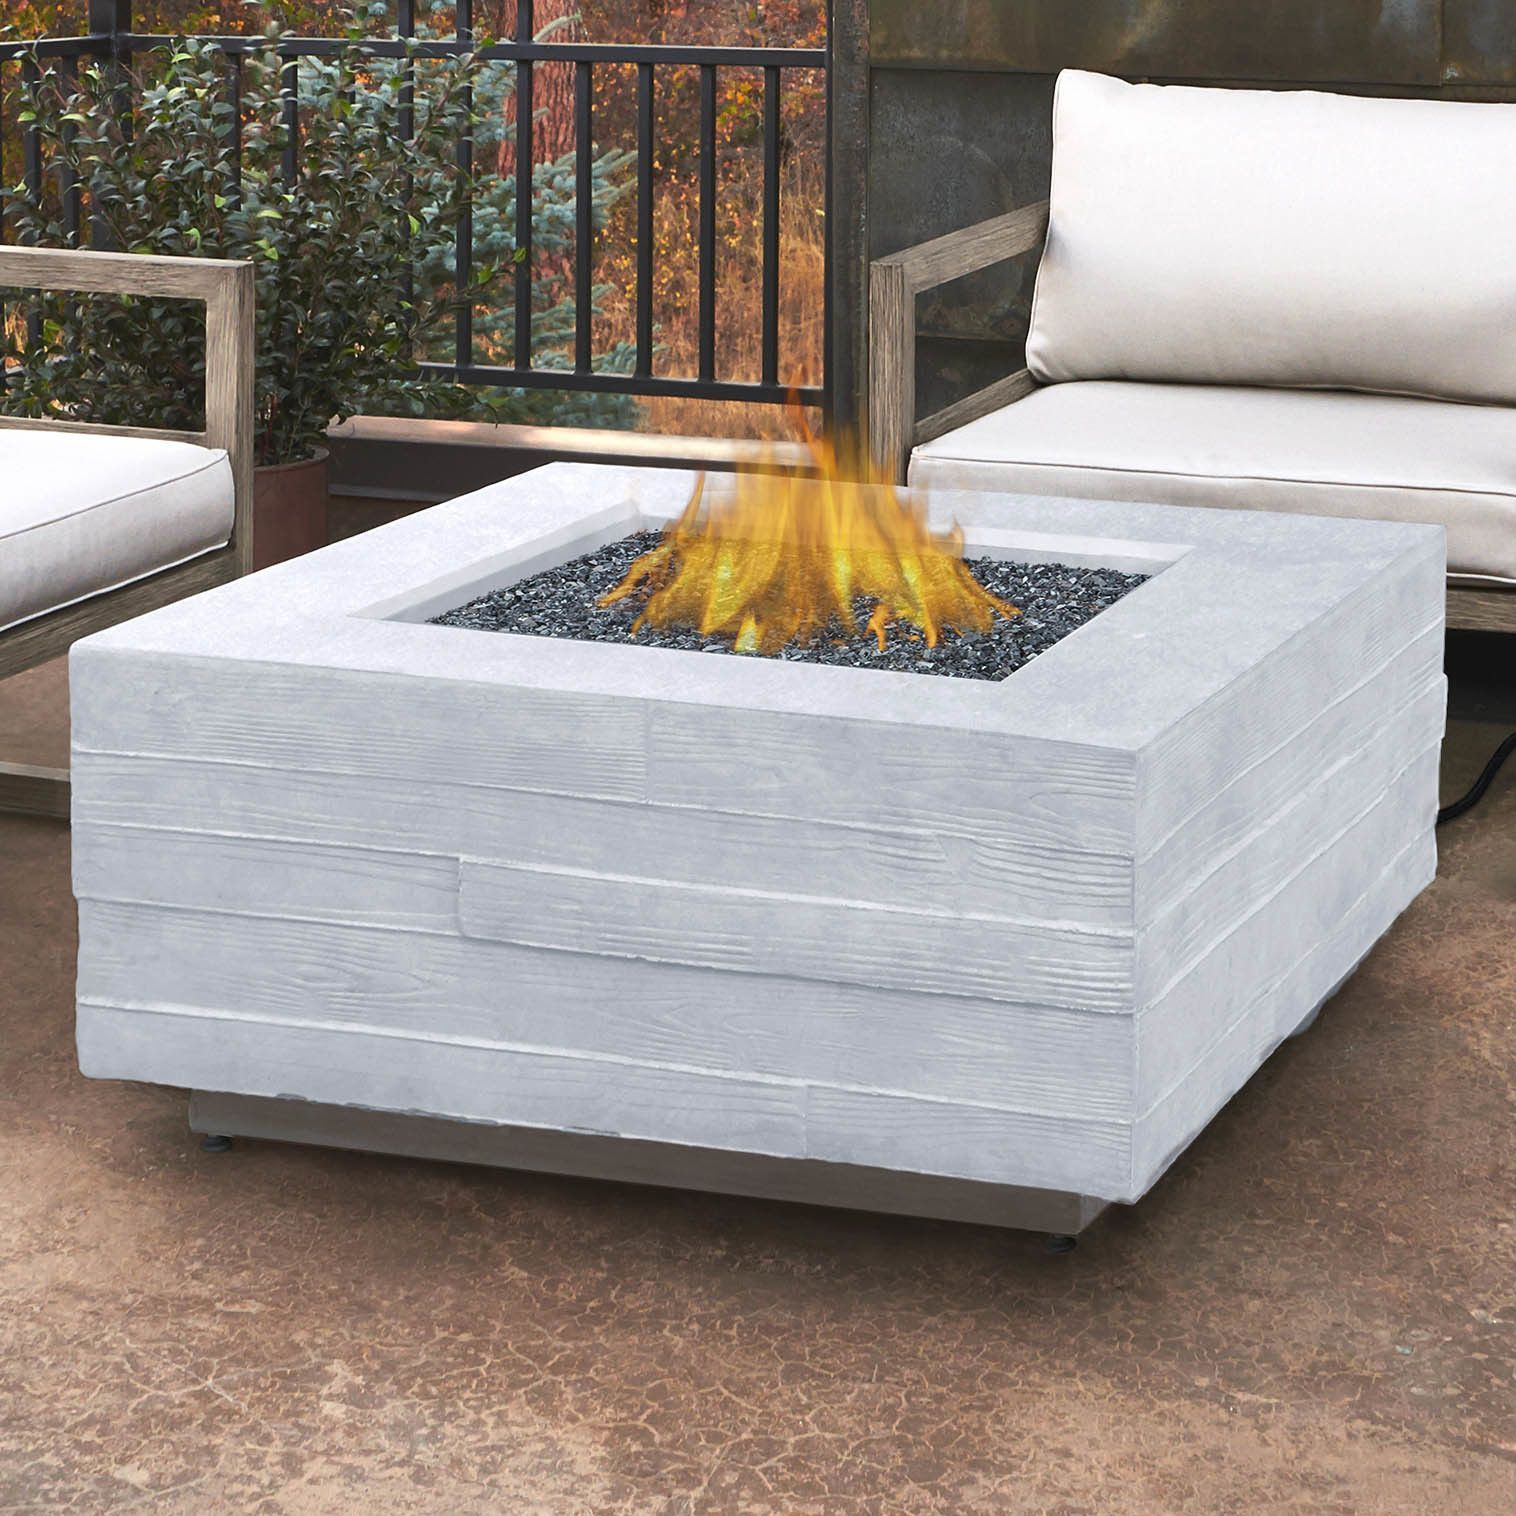 Board form concrete propane fire pit table in back yard